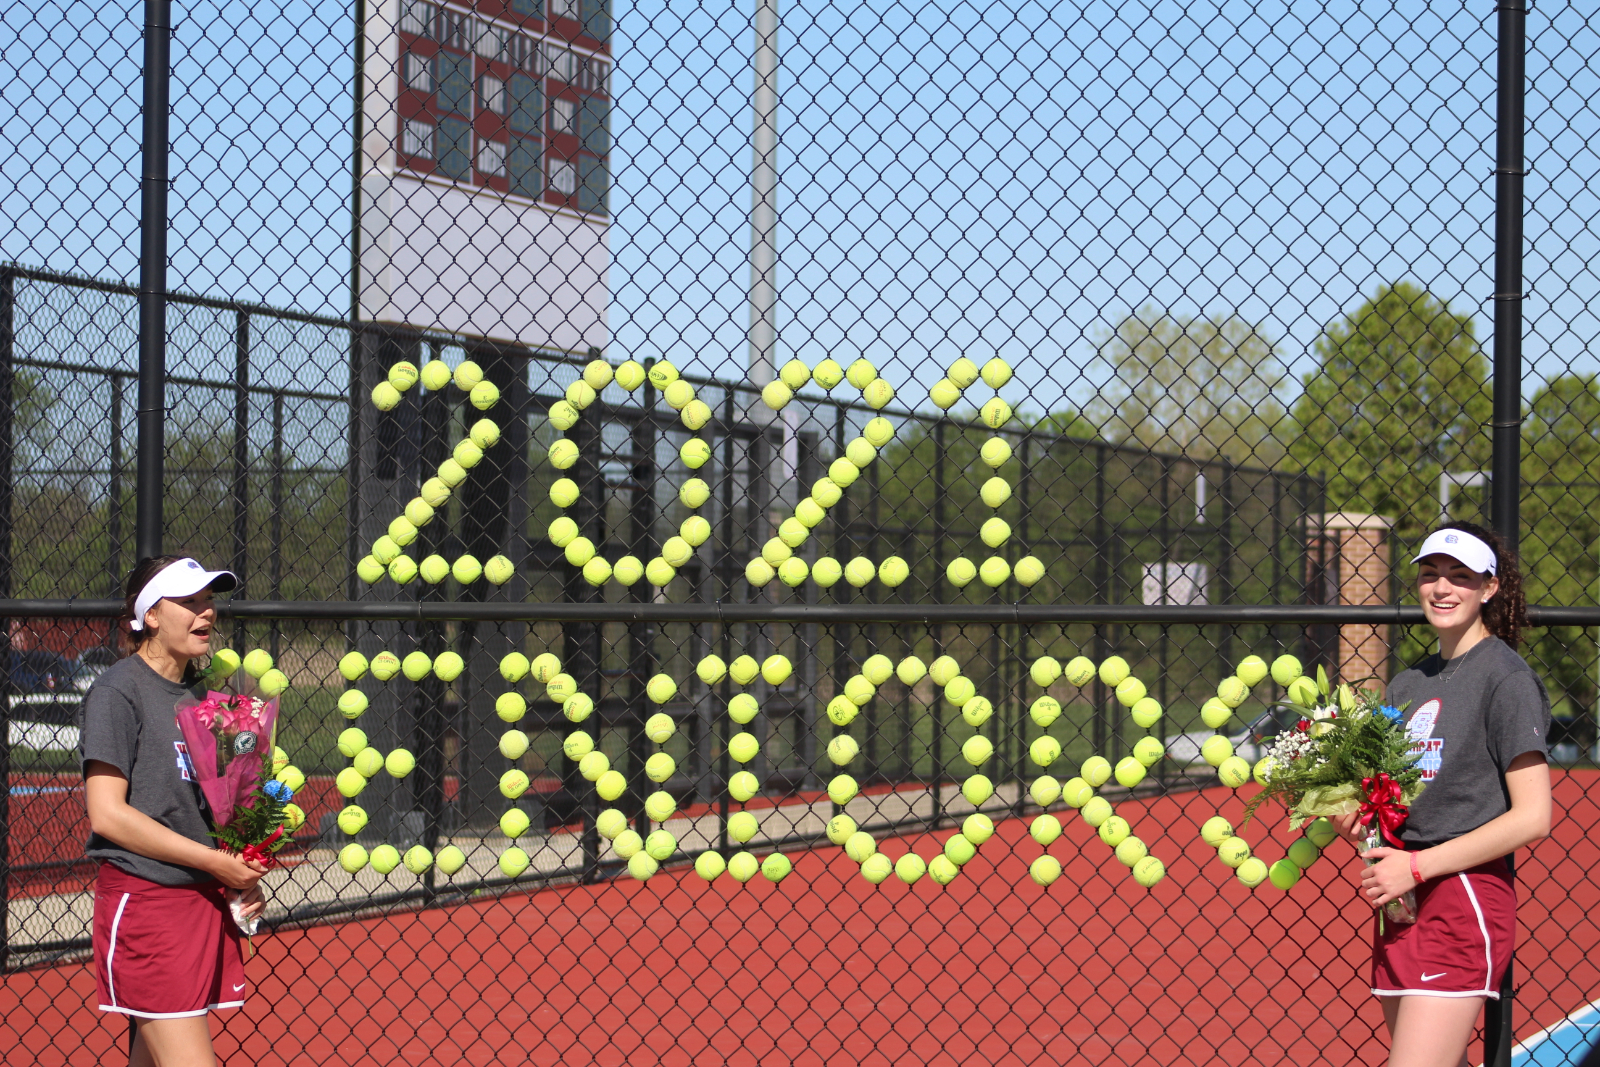 Senior Night at Tennis – 5-4-21